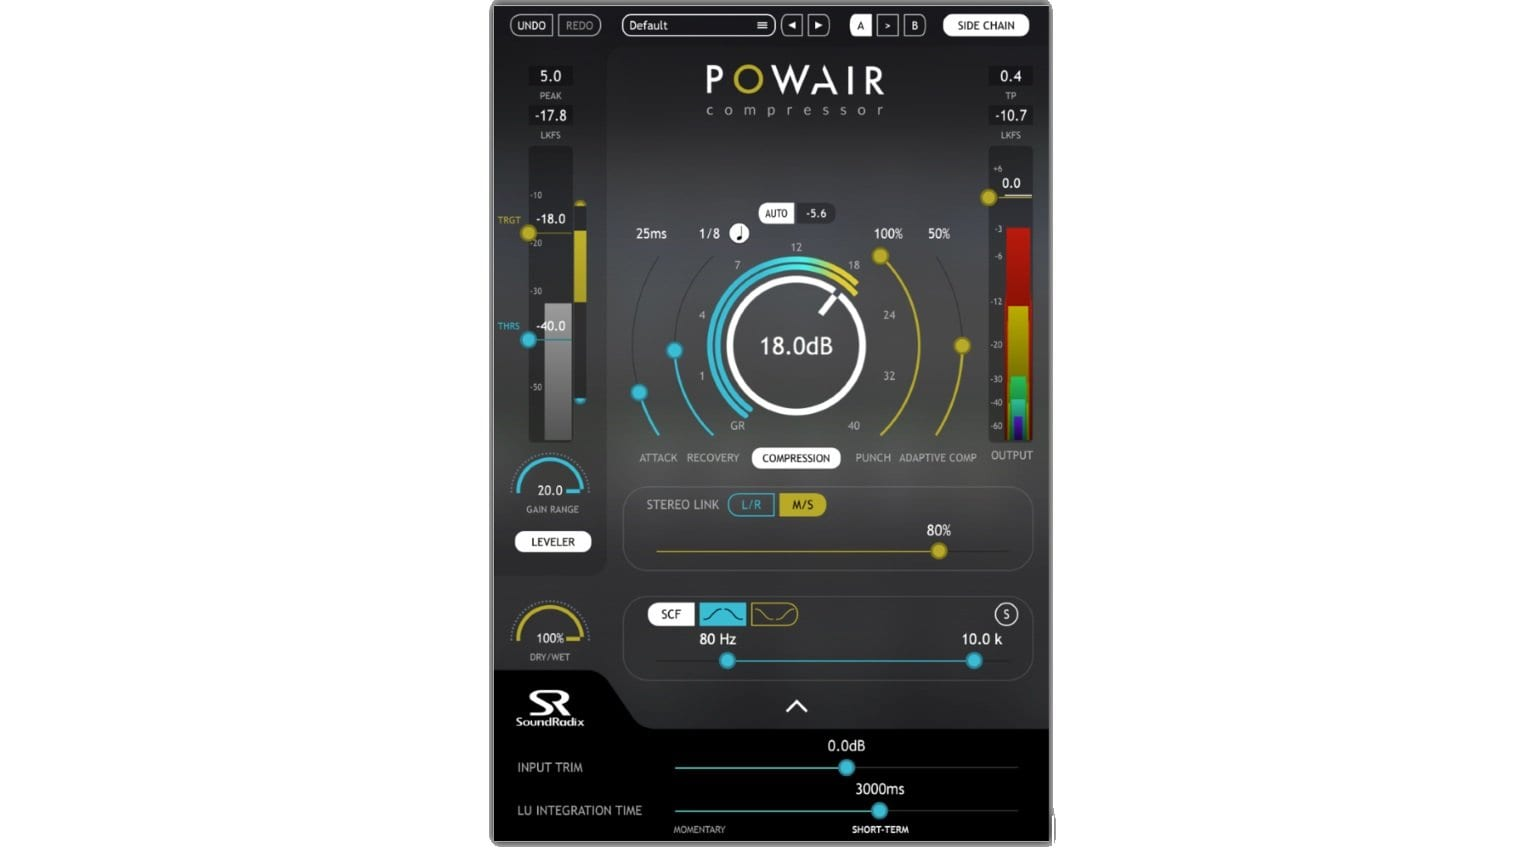 Aes 2017 Sound Radix Powair Adaptive Compressor Tames The Peaks On Analog To Meet Any Higher Digital Be Its Own